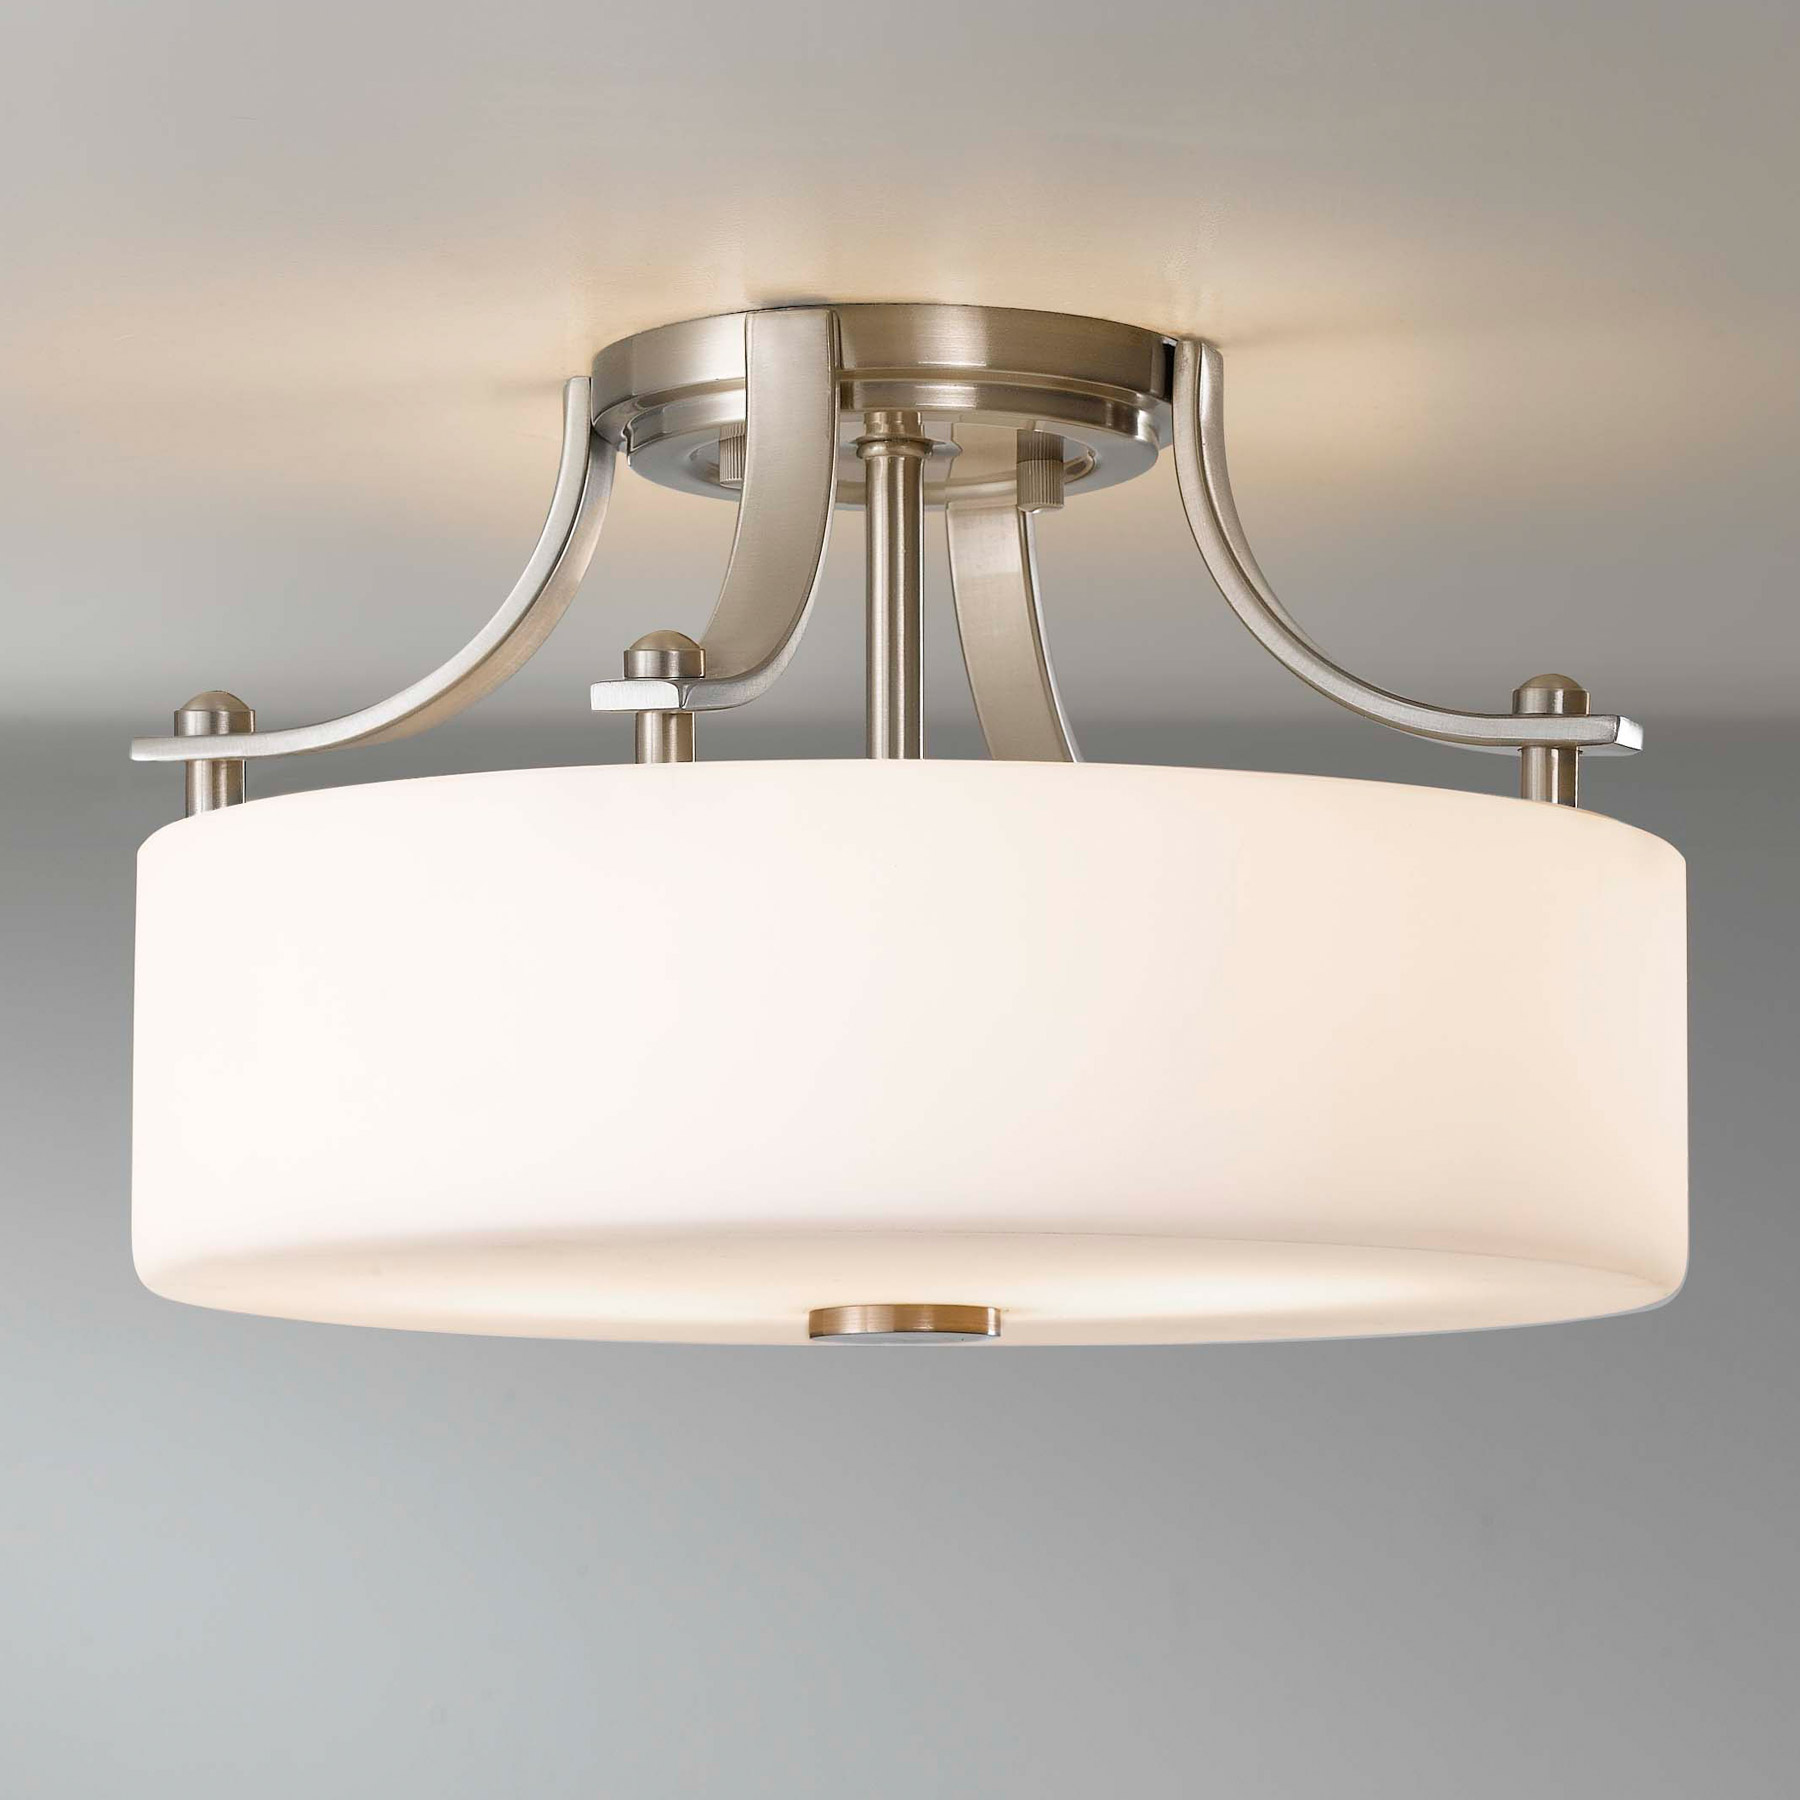 Wonderful Murray Feiss SF259BS Sunset Drive Semi Flush Ceiling Fixture